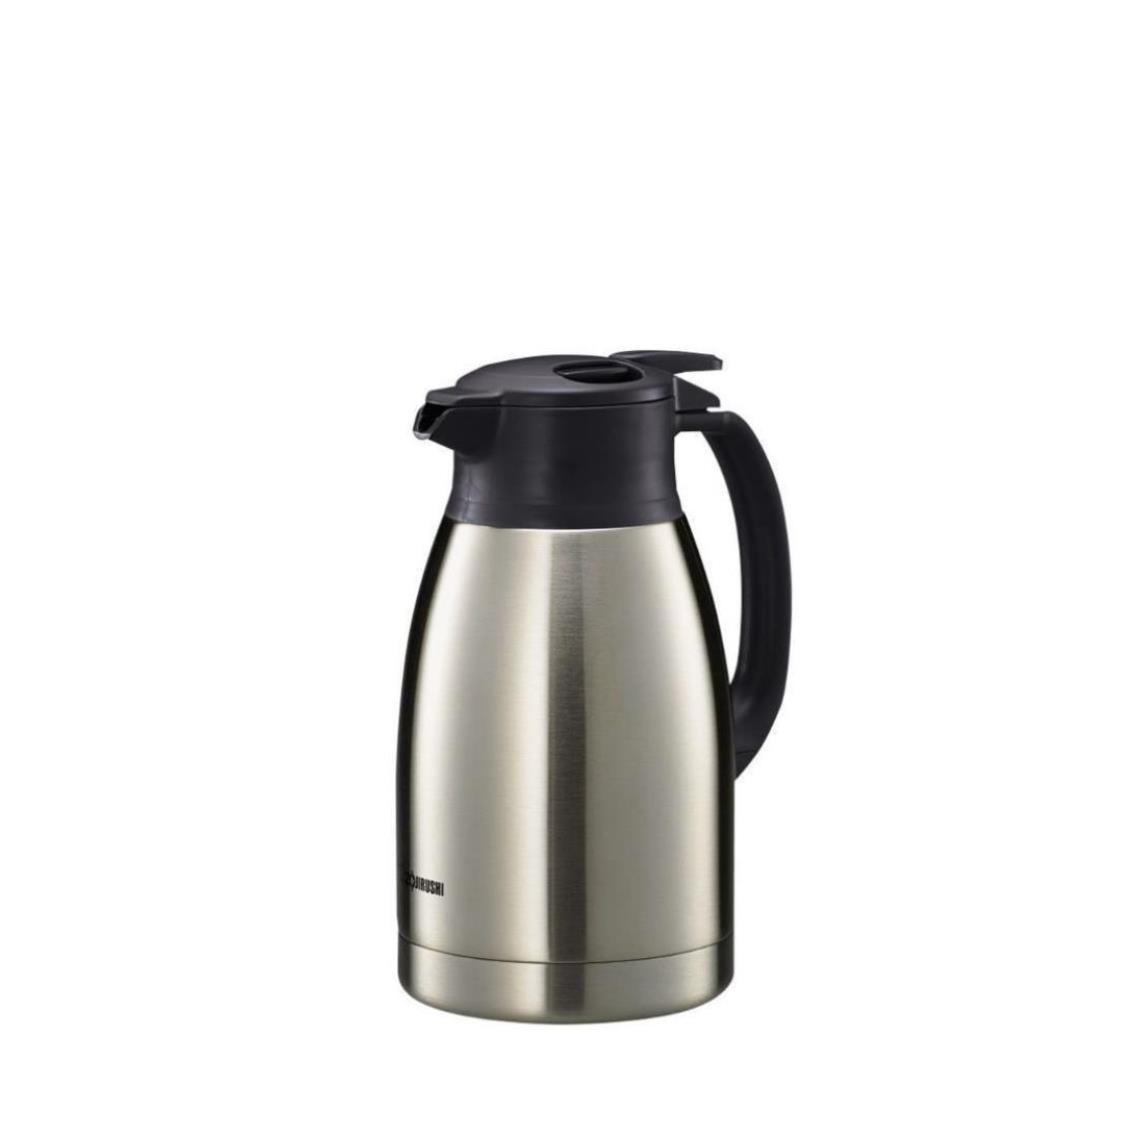 Handy Pot Stainless 15L